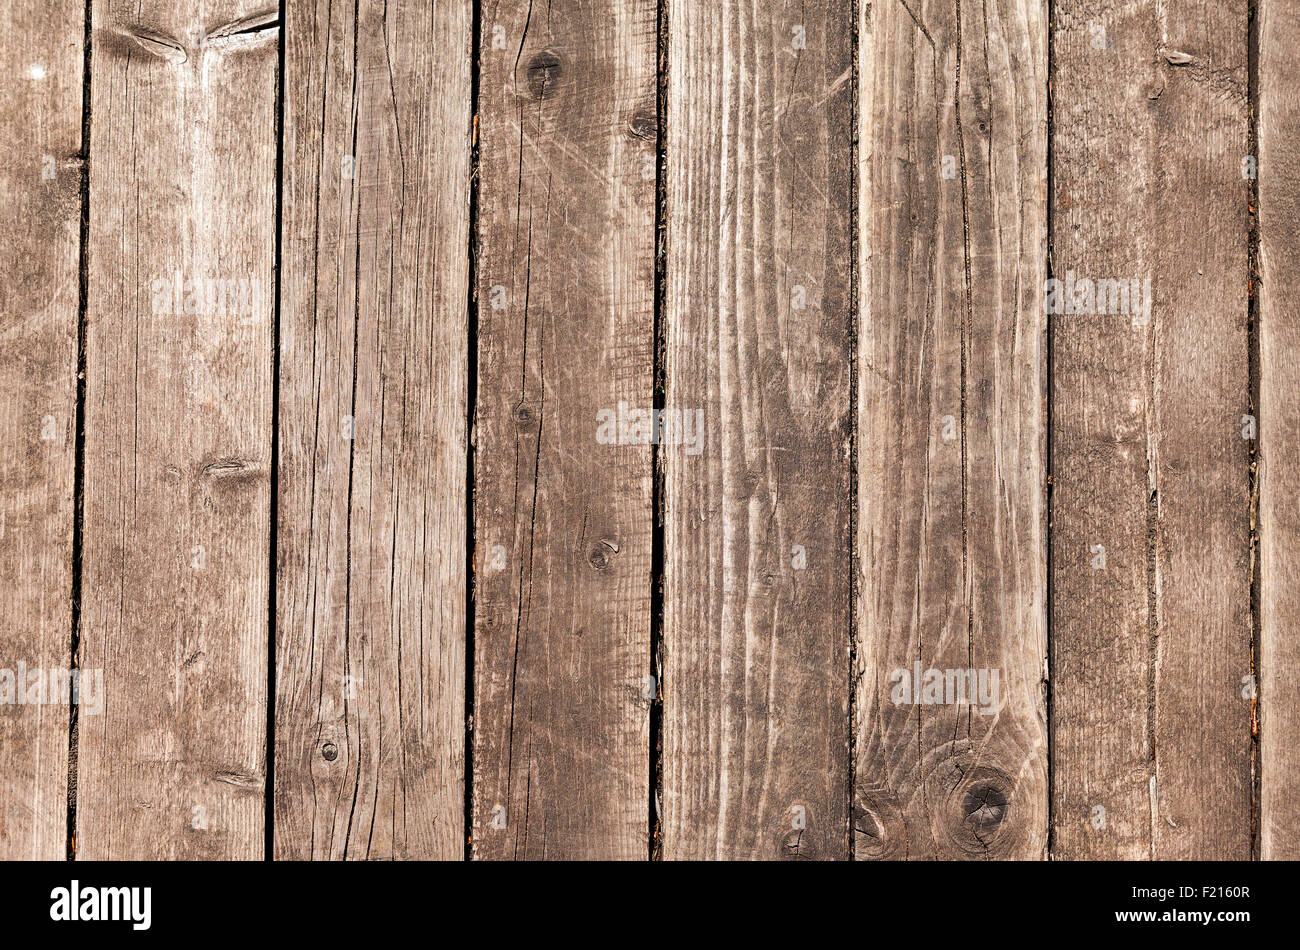 Gray wood texture with natural patterns - Stock Image